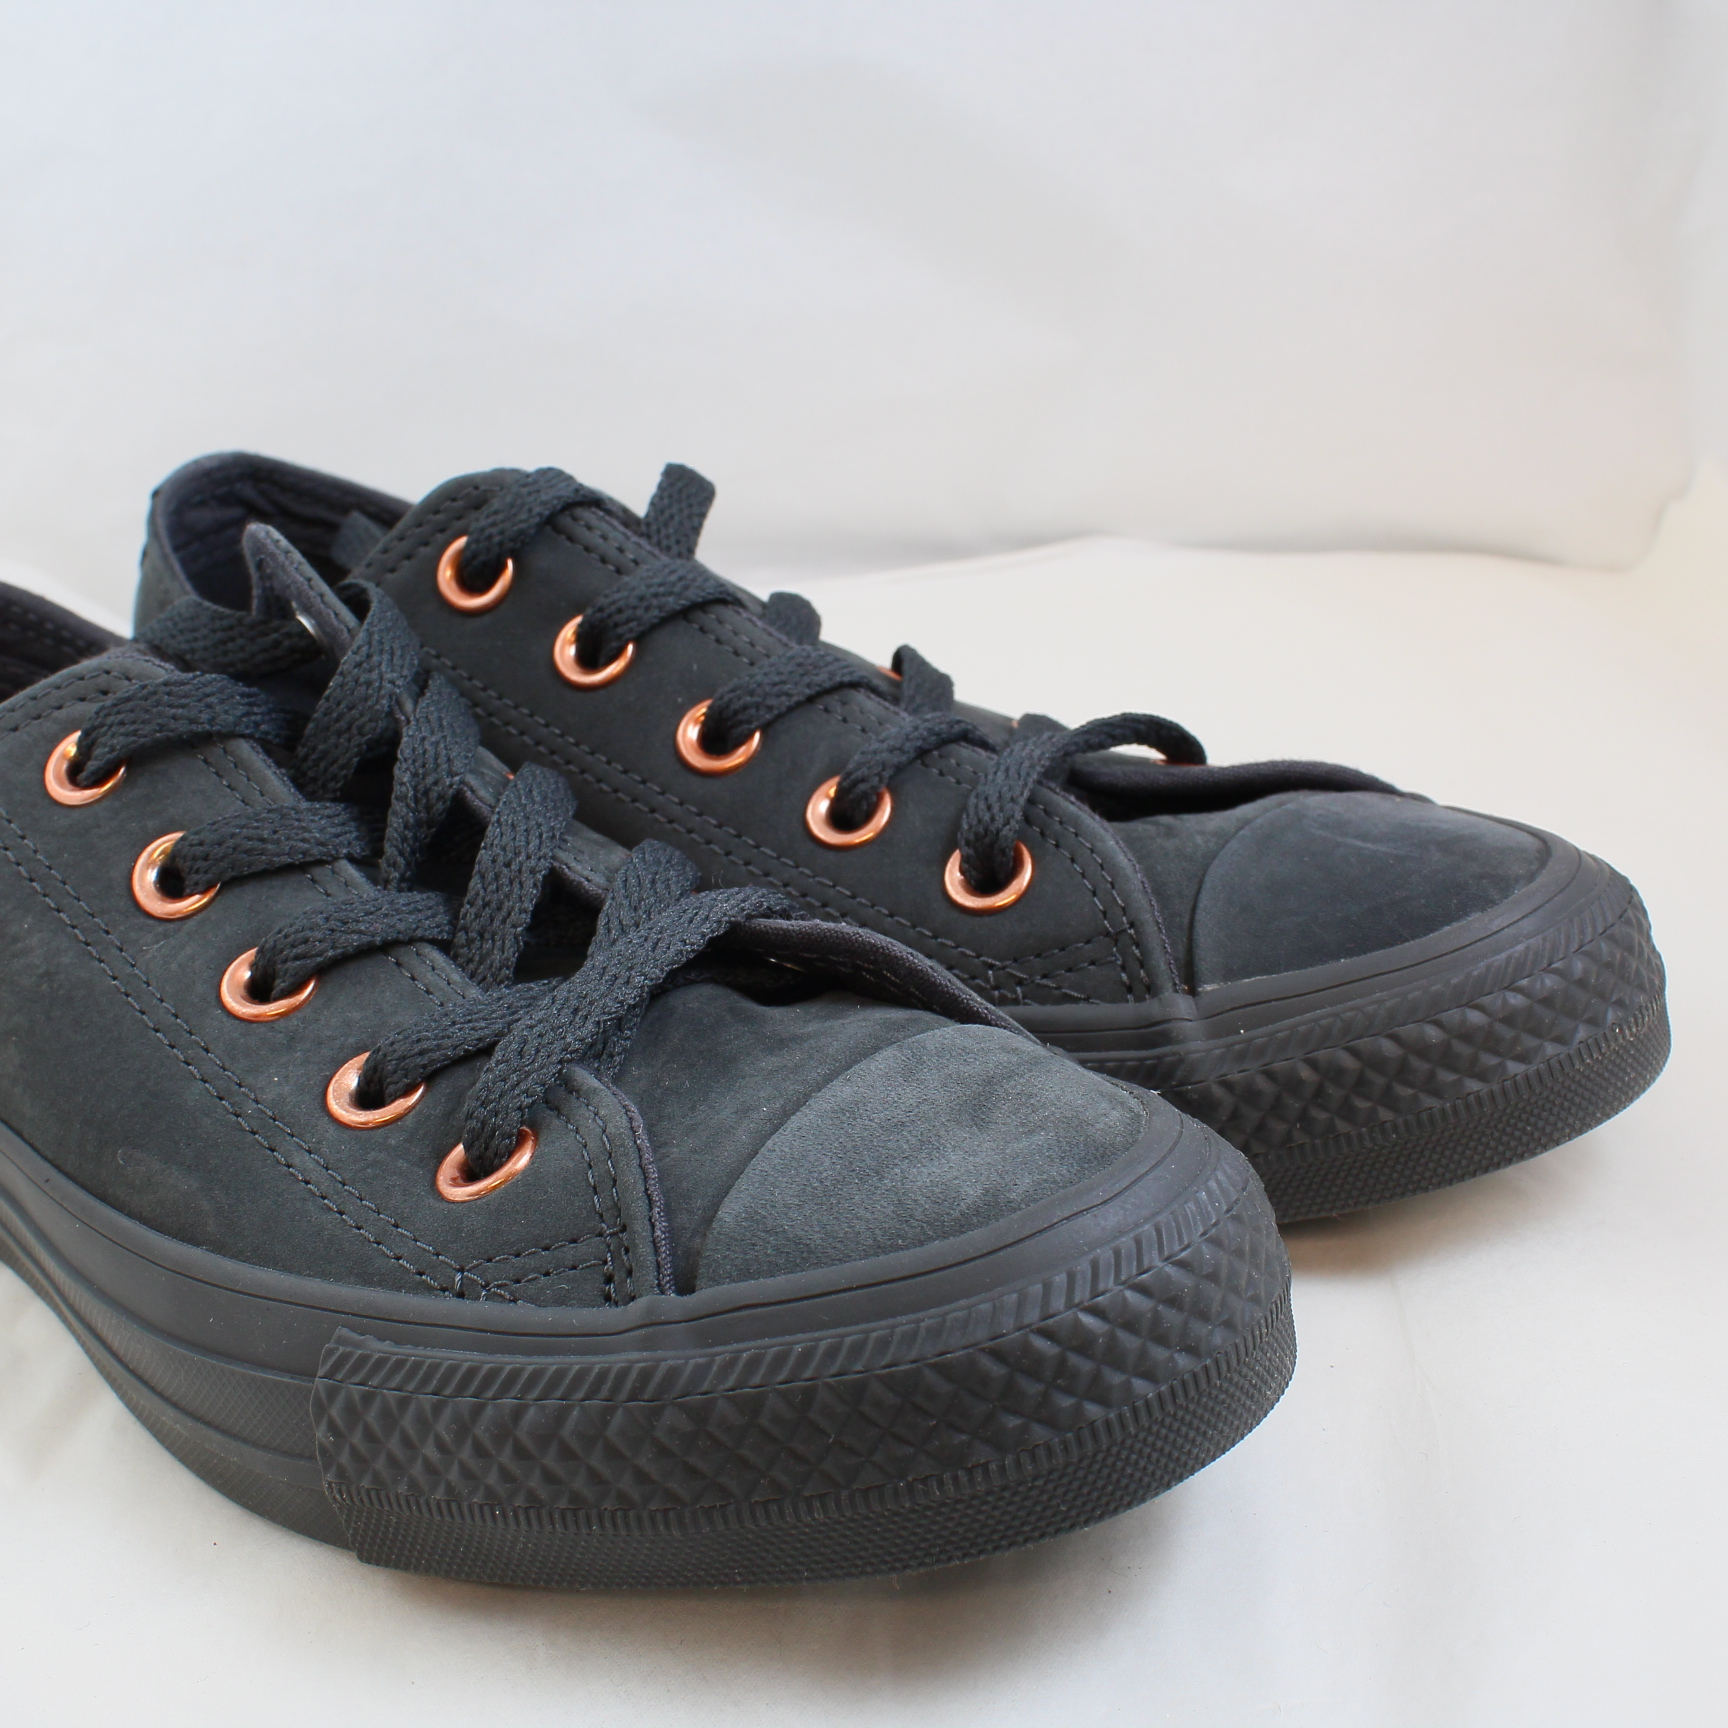 739f30d5699f1a Sentinel Thumbnail 3. Sentinel Womens Converse Black Suede Lace Up Trainers  Size UK 3  Ex-Display. Sentinel Thumbnail 4